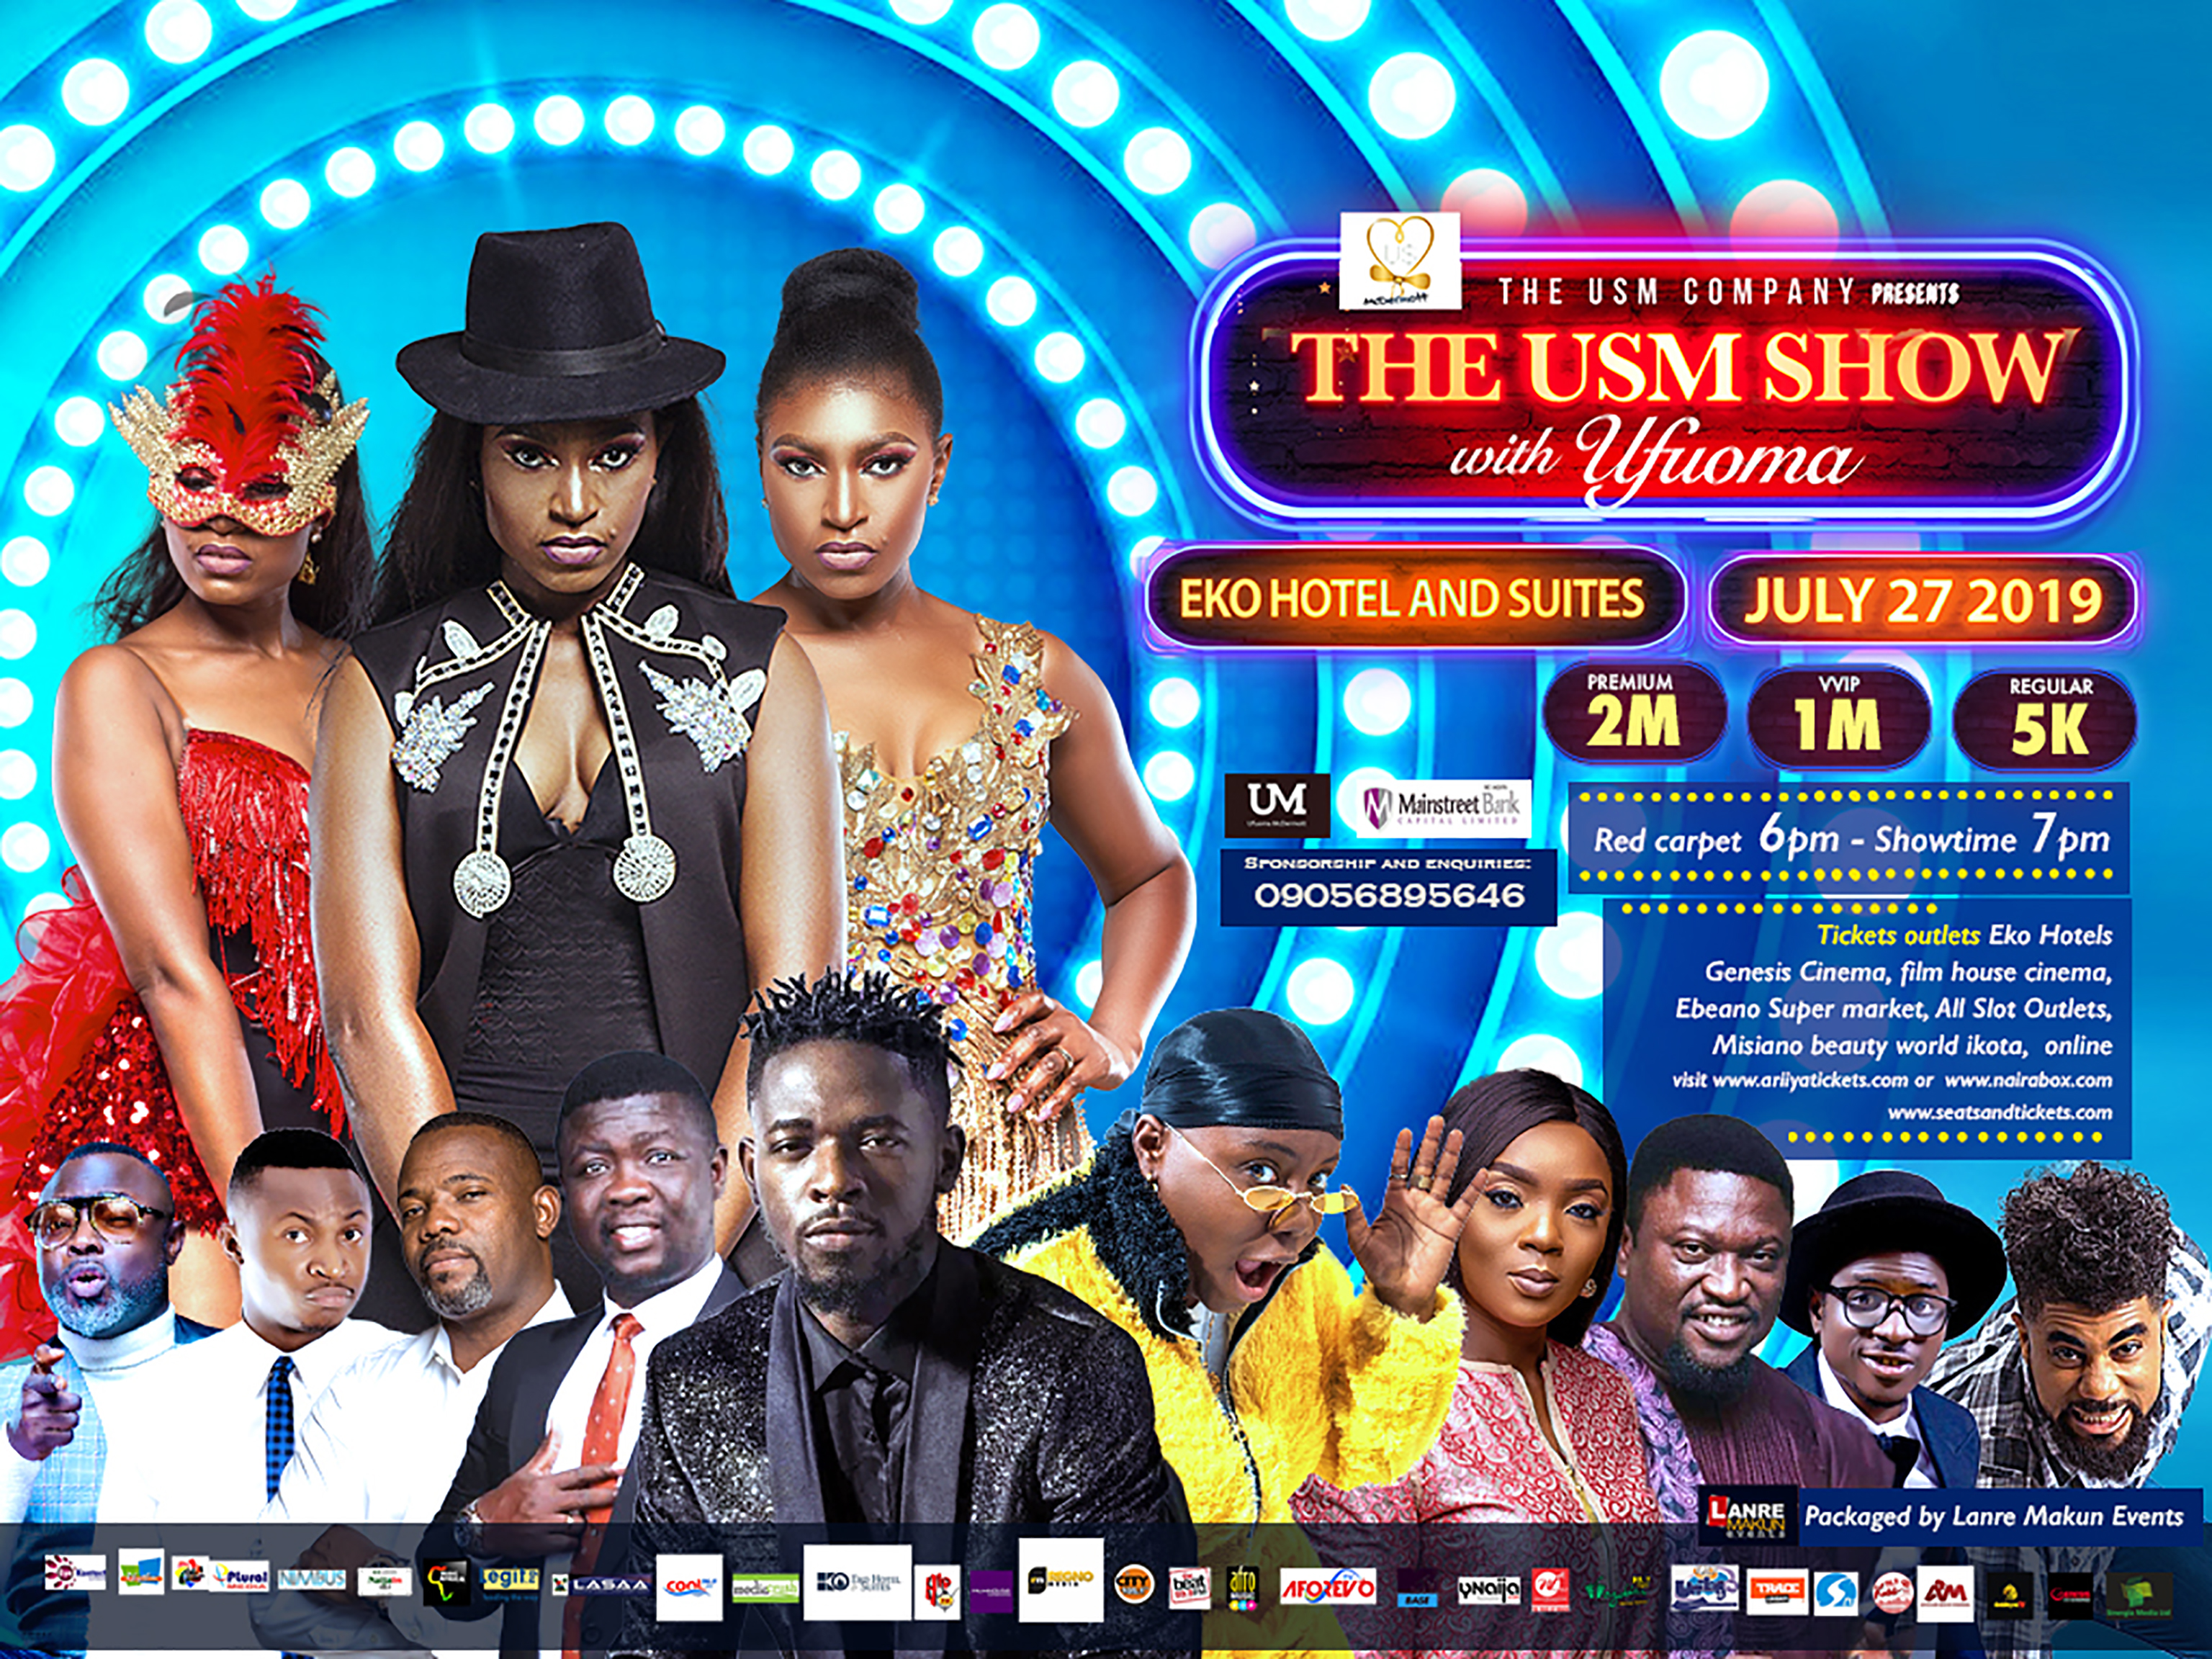 USM SHOW WITH Ufuoma